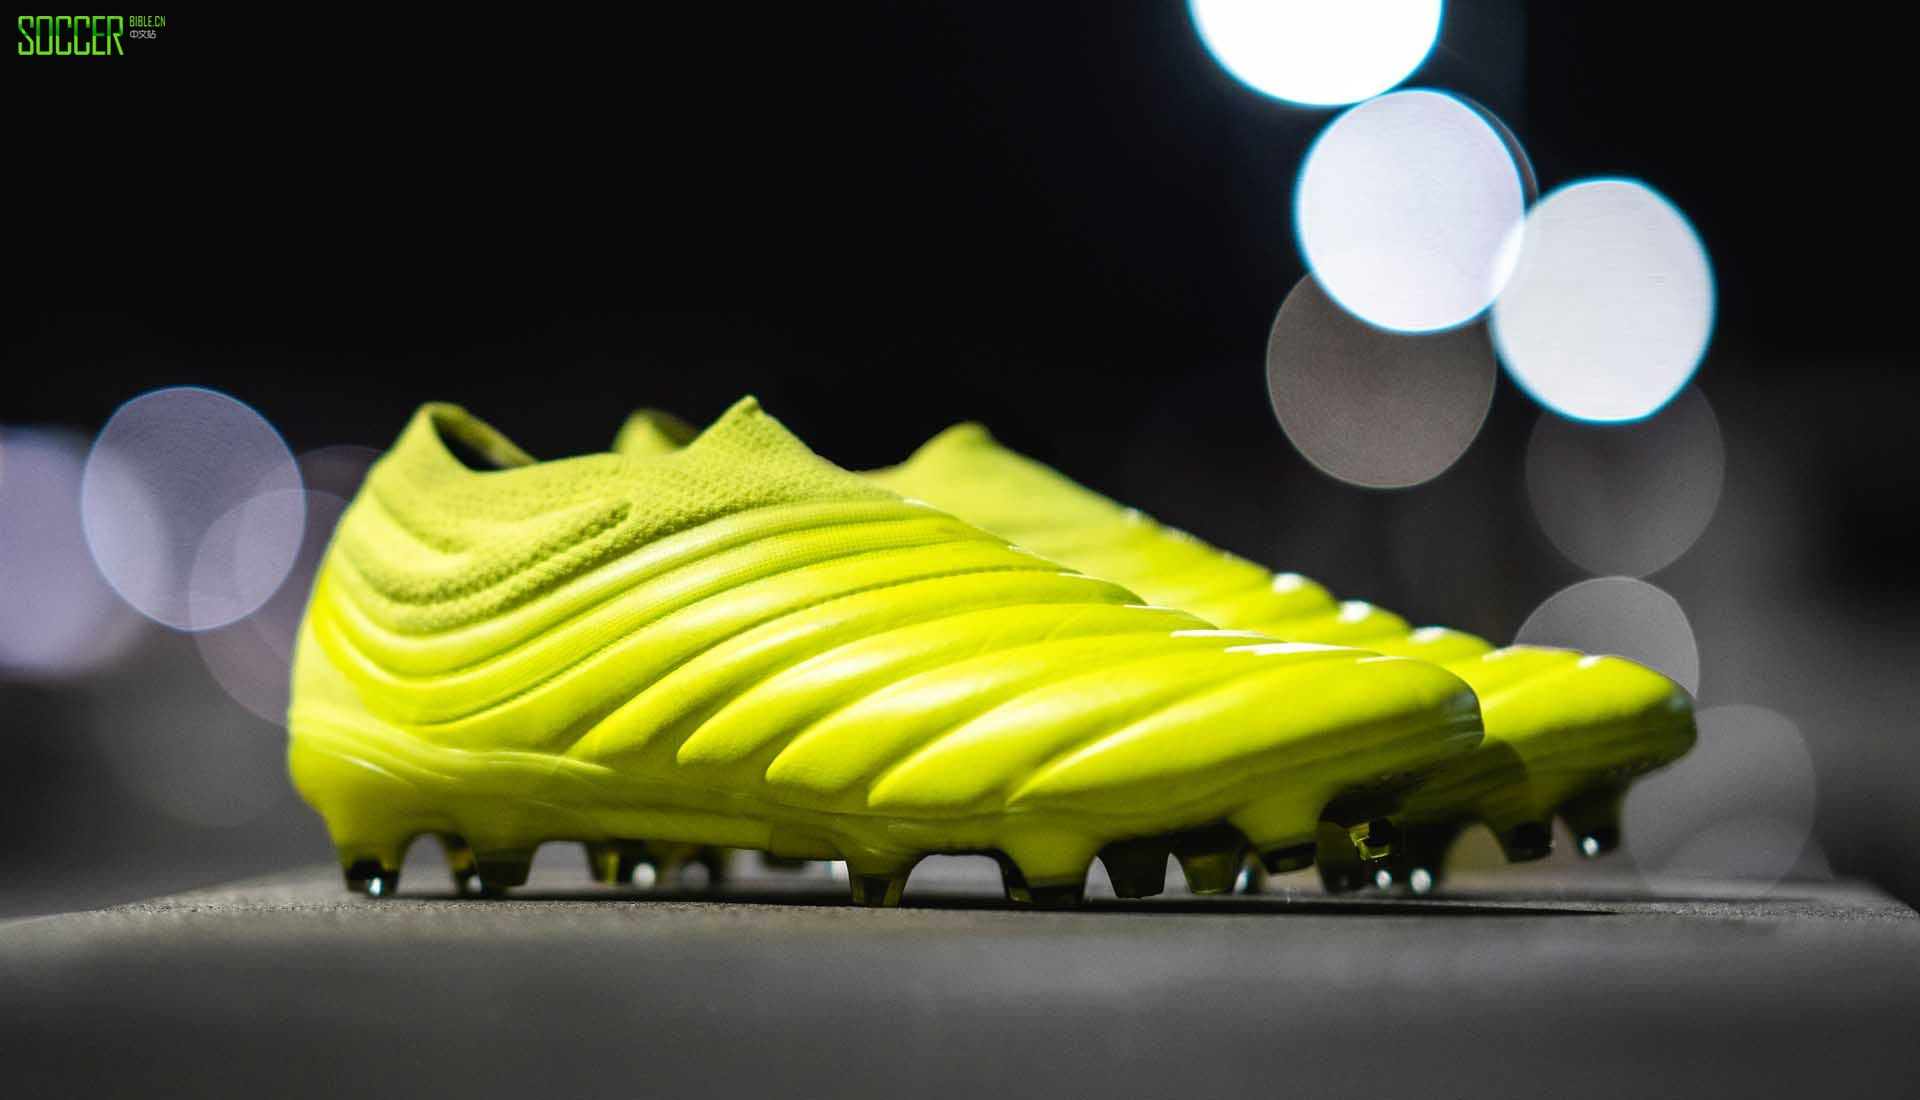 2-adidas-hardwired-pack-copa19-min